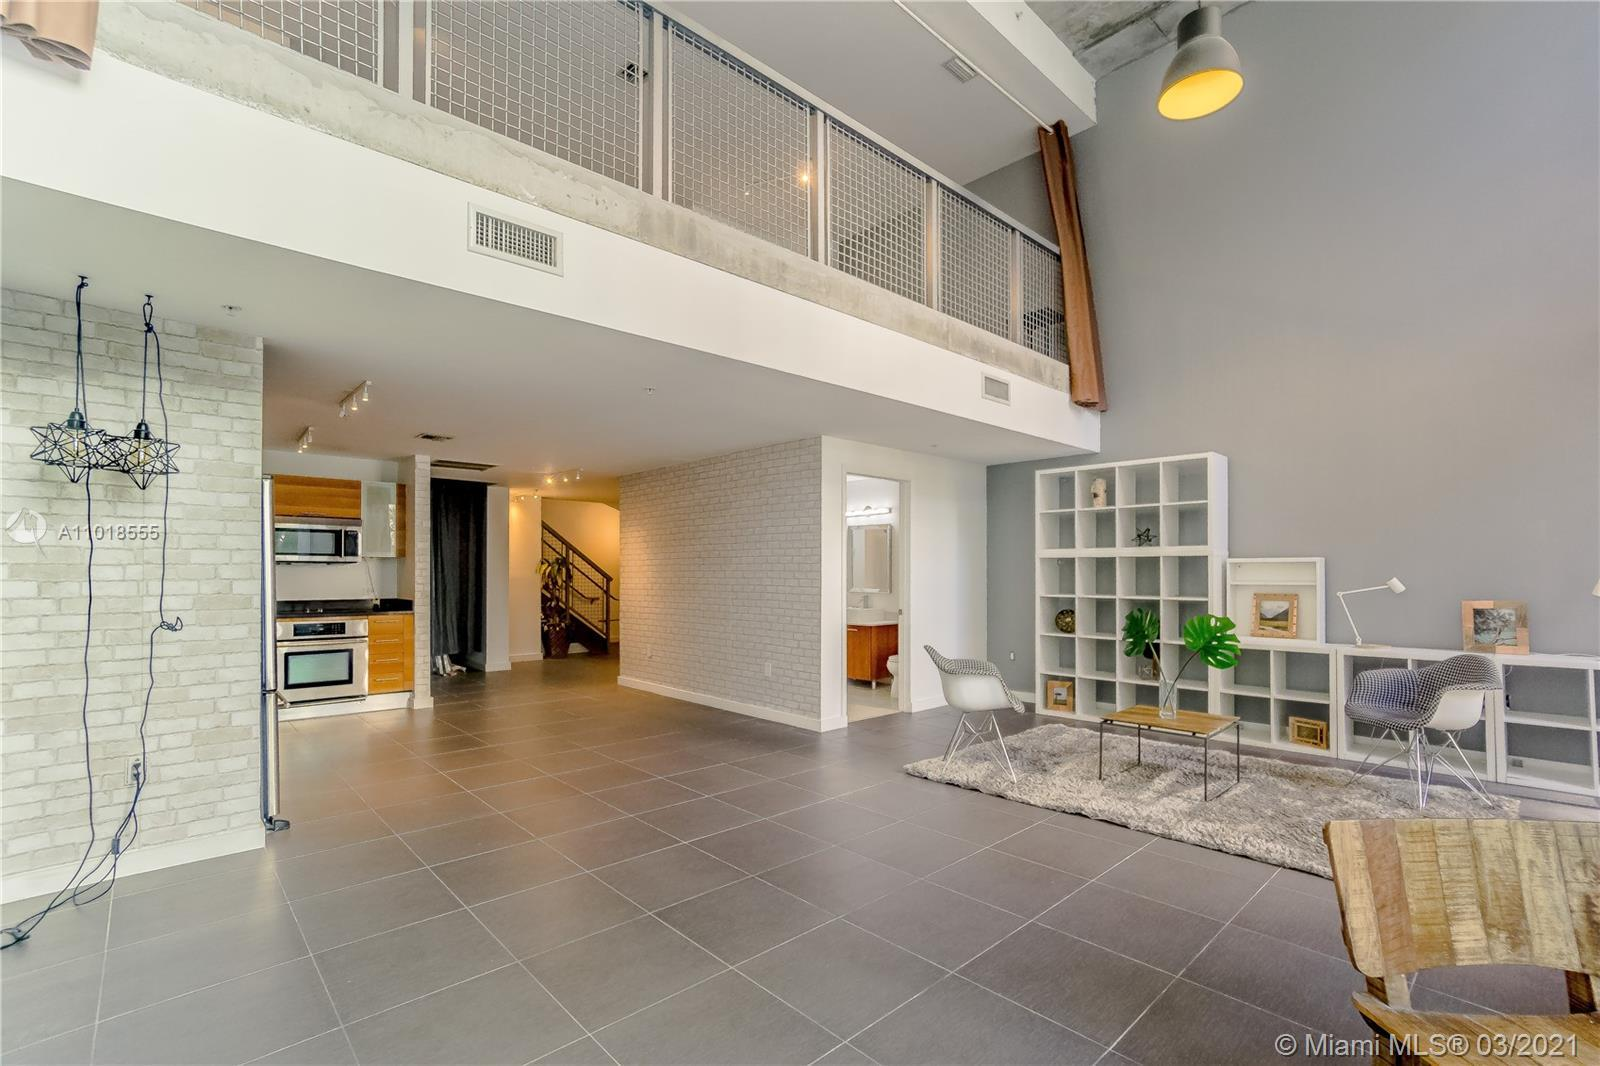 Unique 2 Story- Live/work Loft style 1,737 SF  under AC - 1,804 SF total- This property can be conve